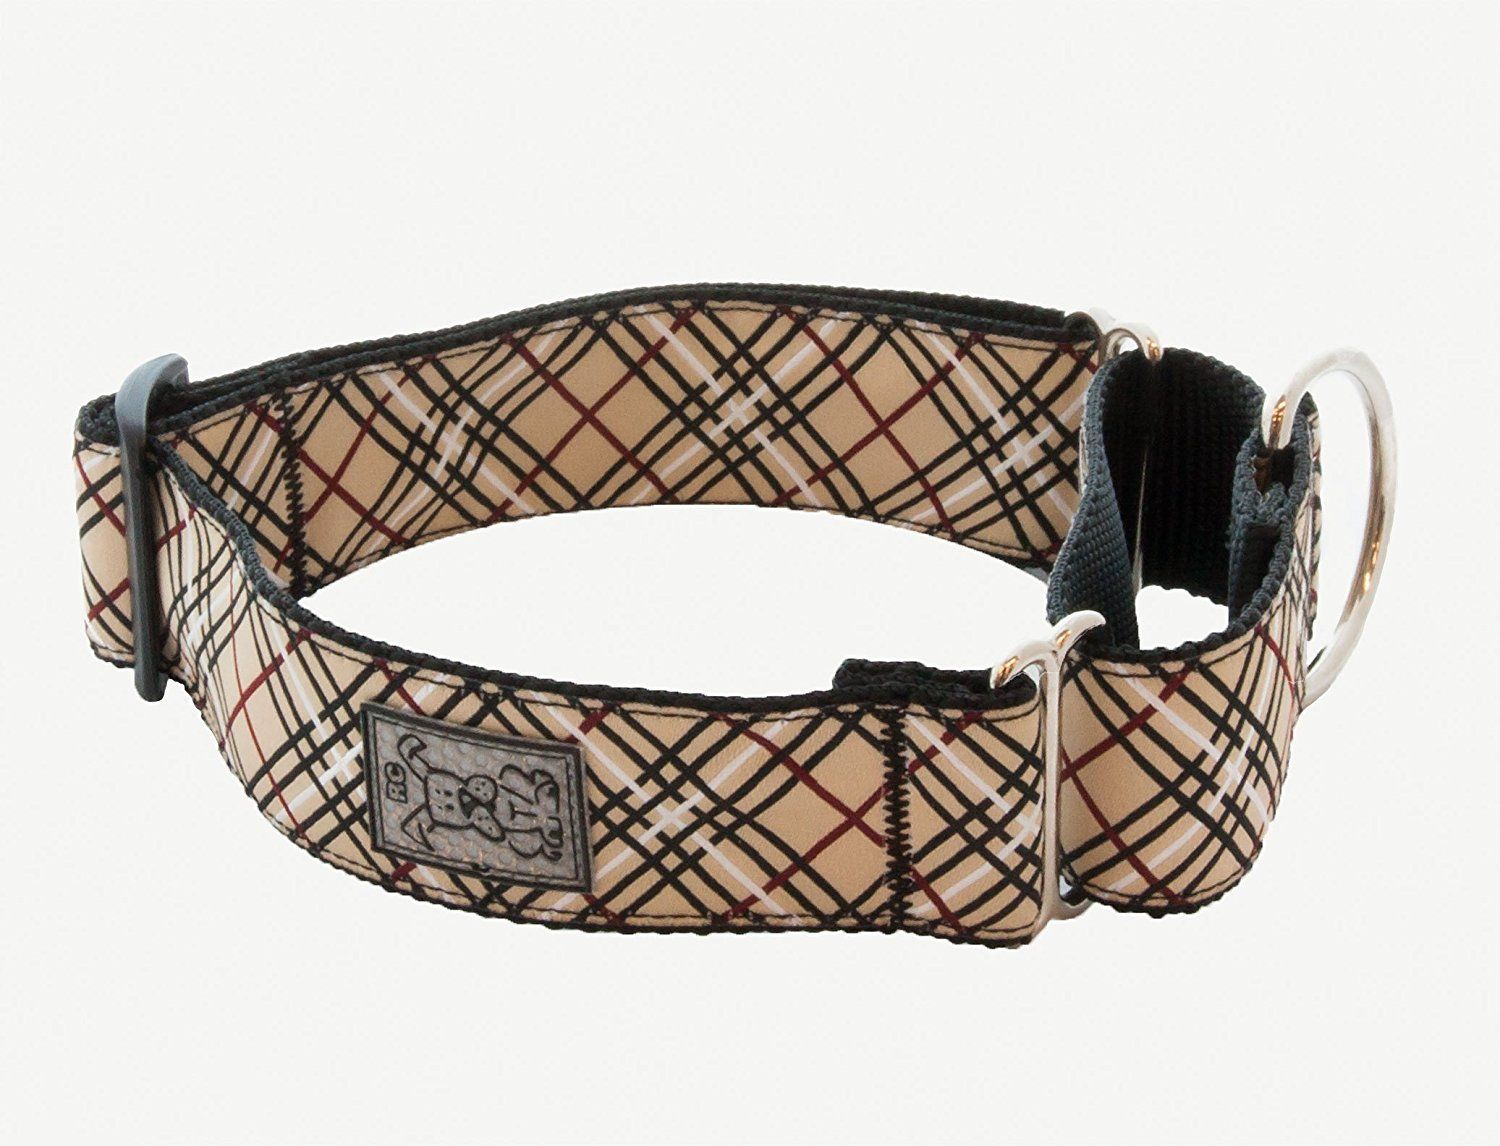 Rc Pet Products 1 1 2 Inch All Webbing Martingale Dog Collar Tan